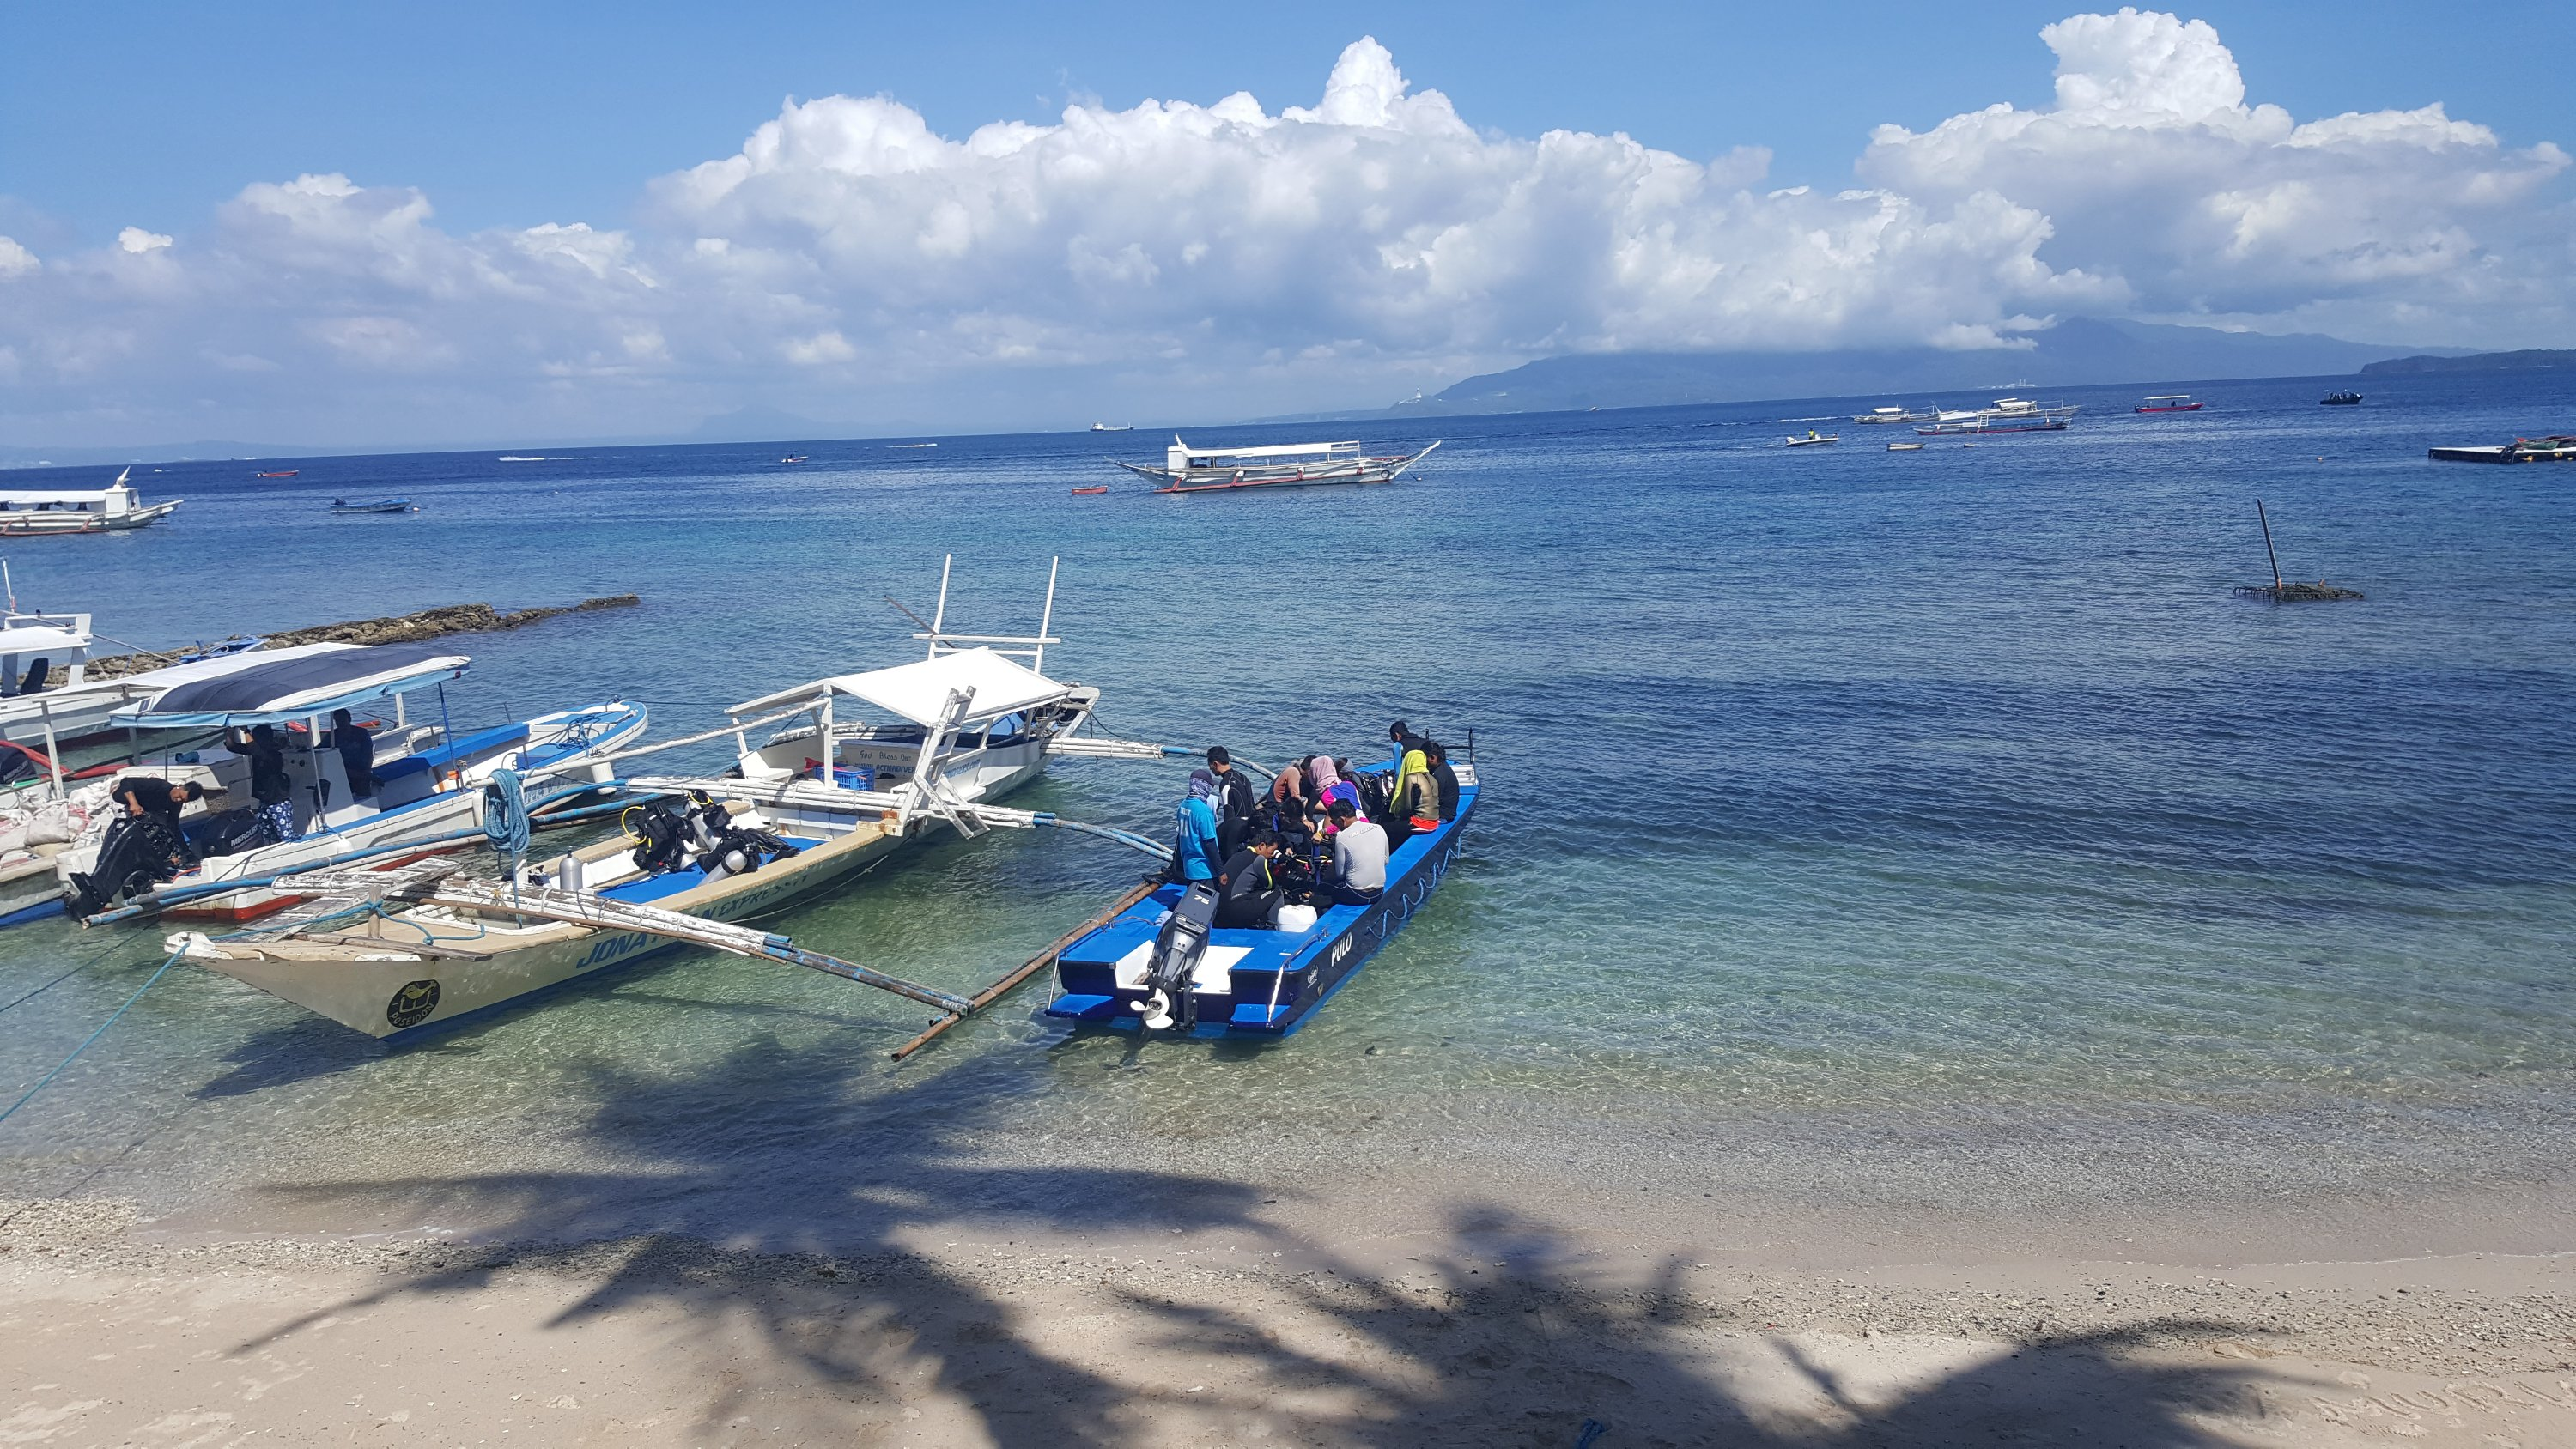 That is the boat that will pick us up when we are done diving.